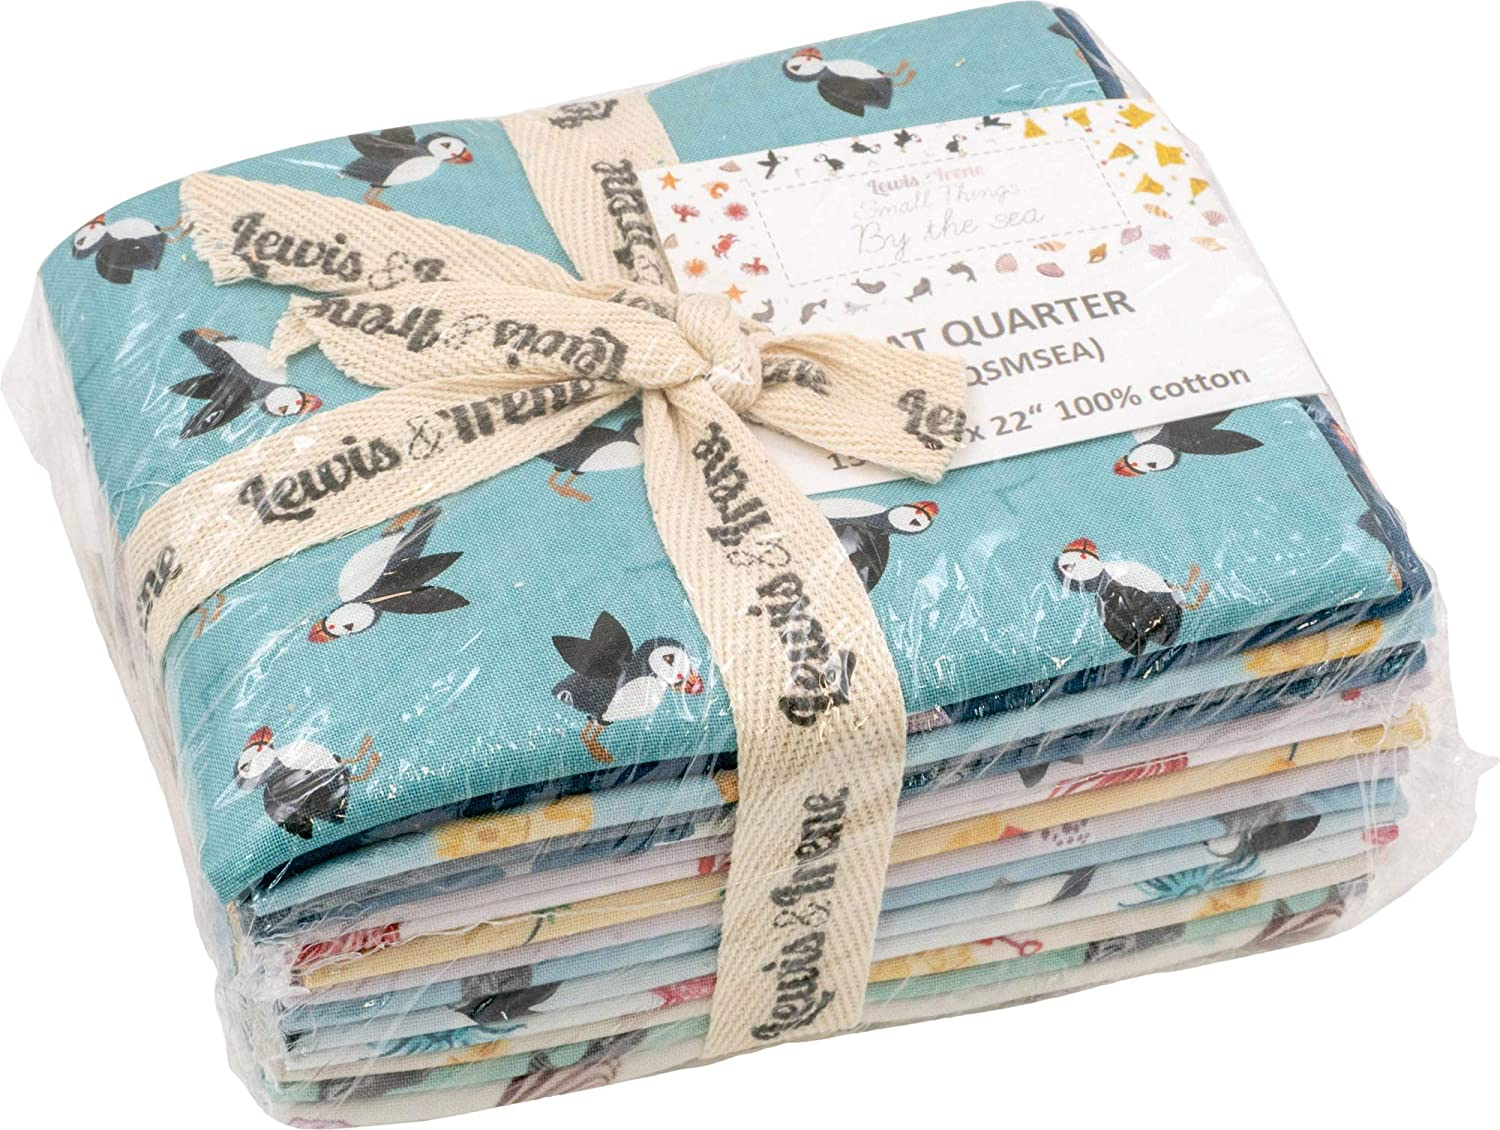 Small Things/… by The Sea 15 Fat Quarters Lewis /& Irene